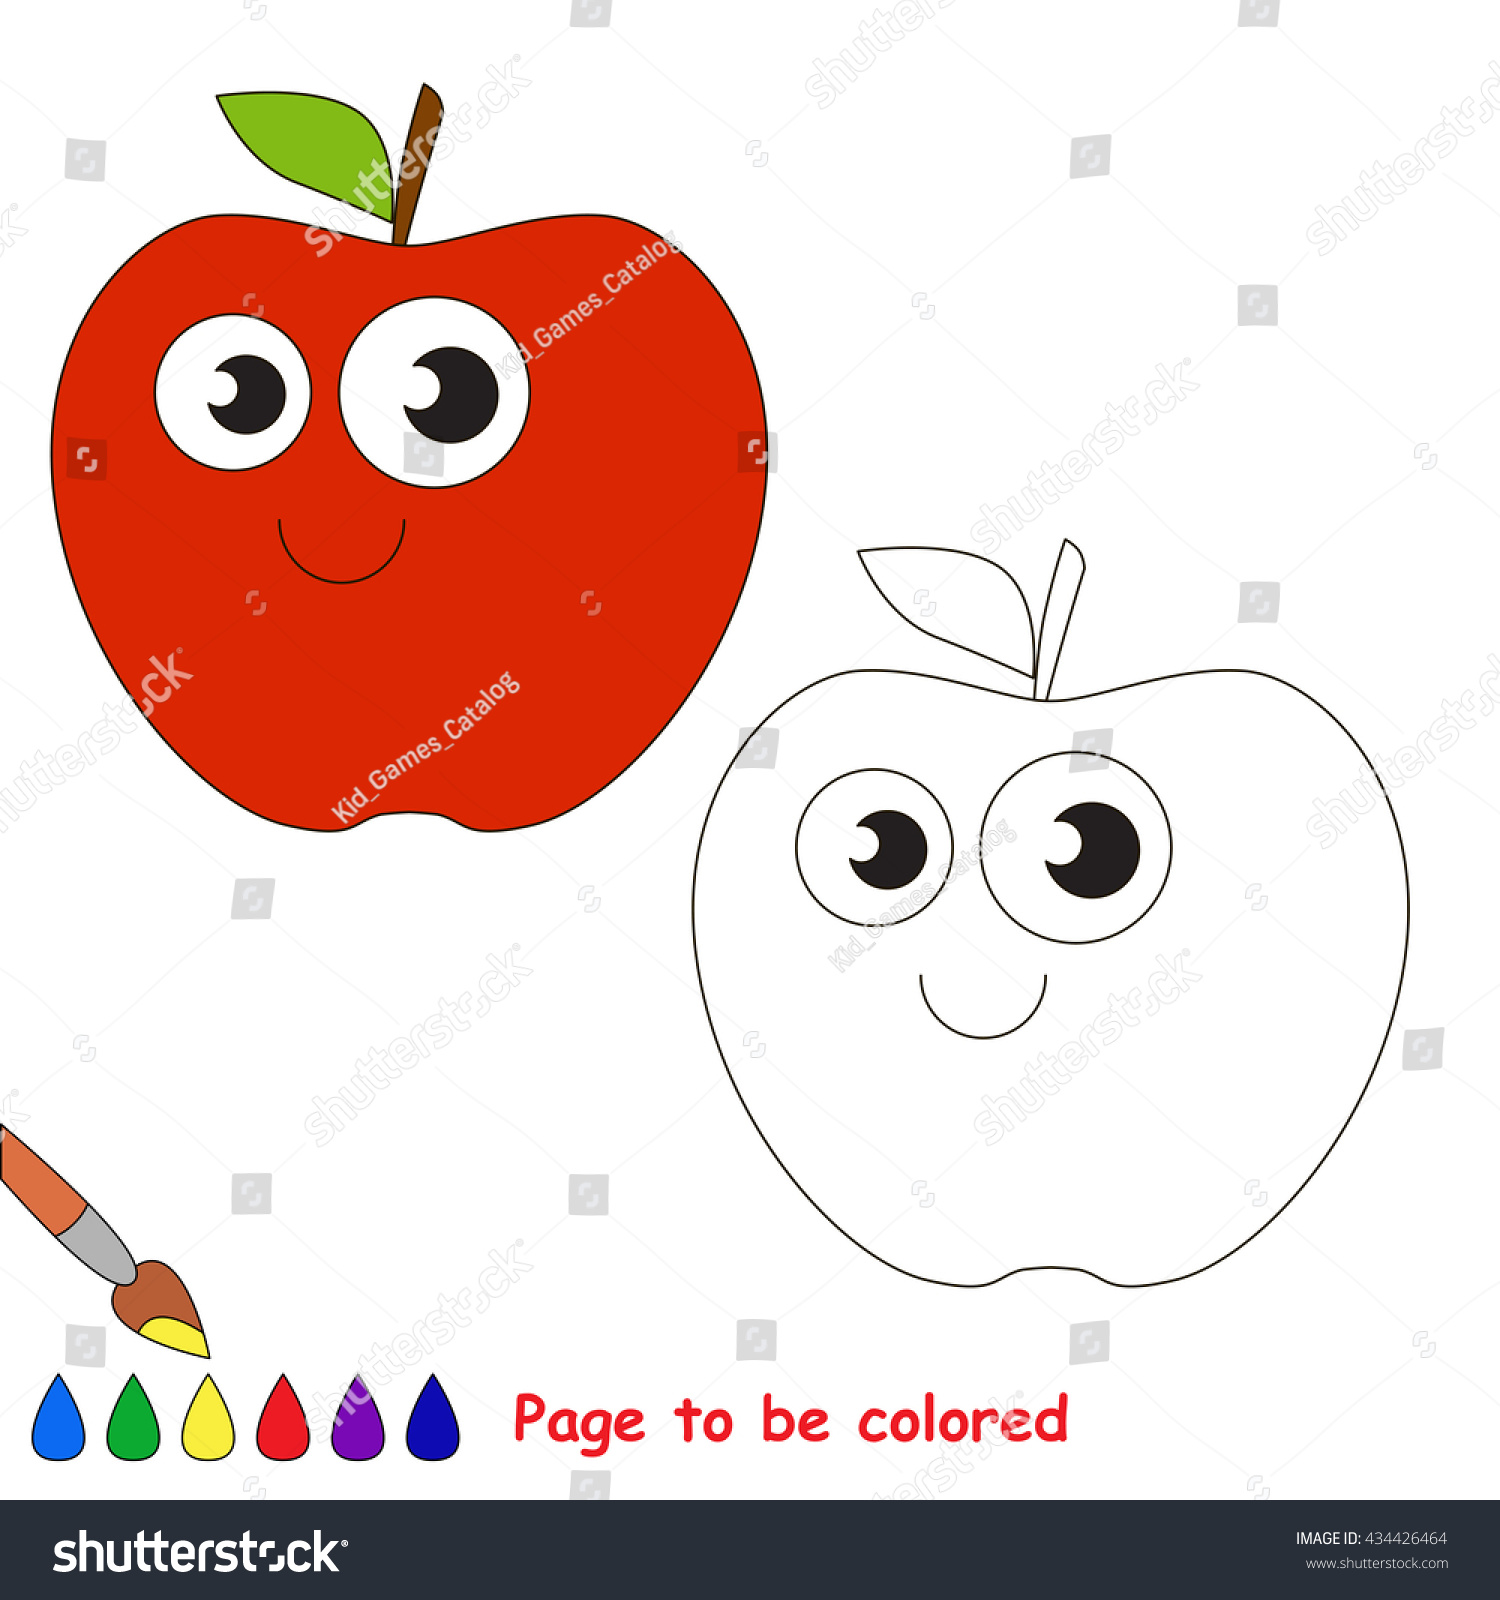 red apple be colored coloring book stock vector 434426464